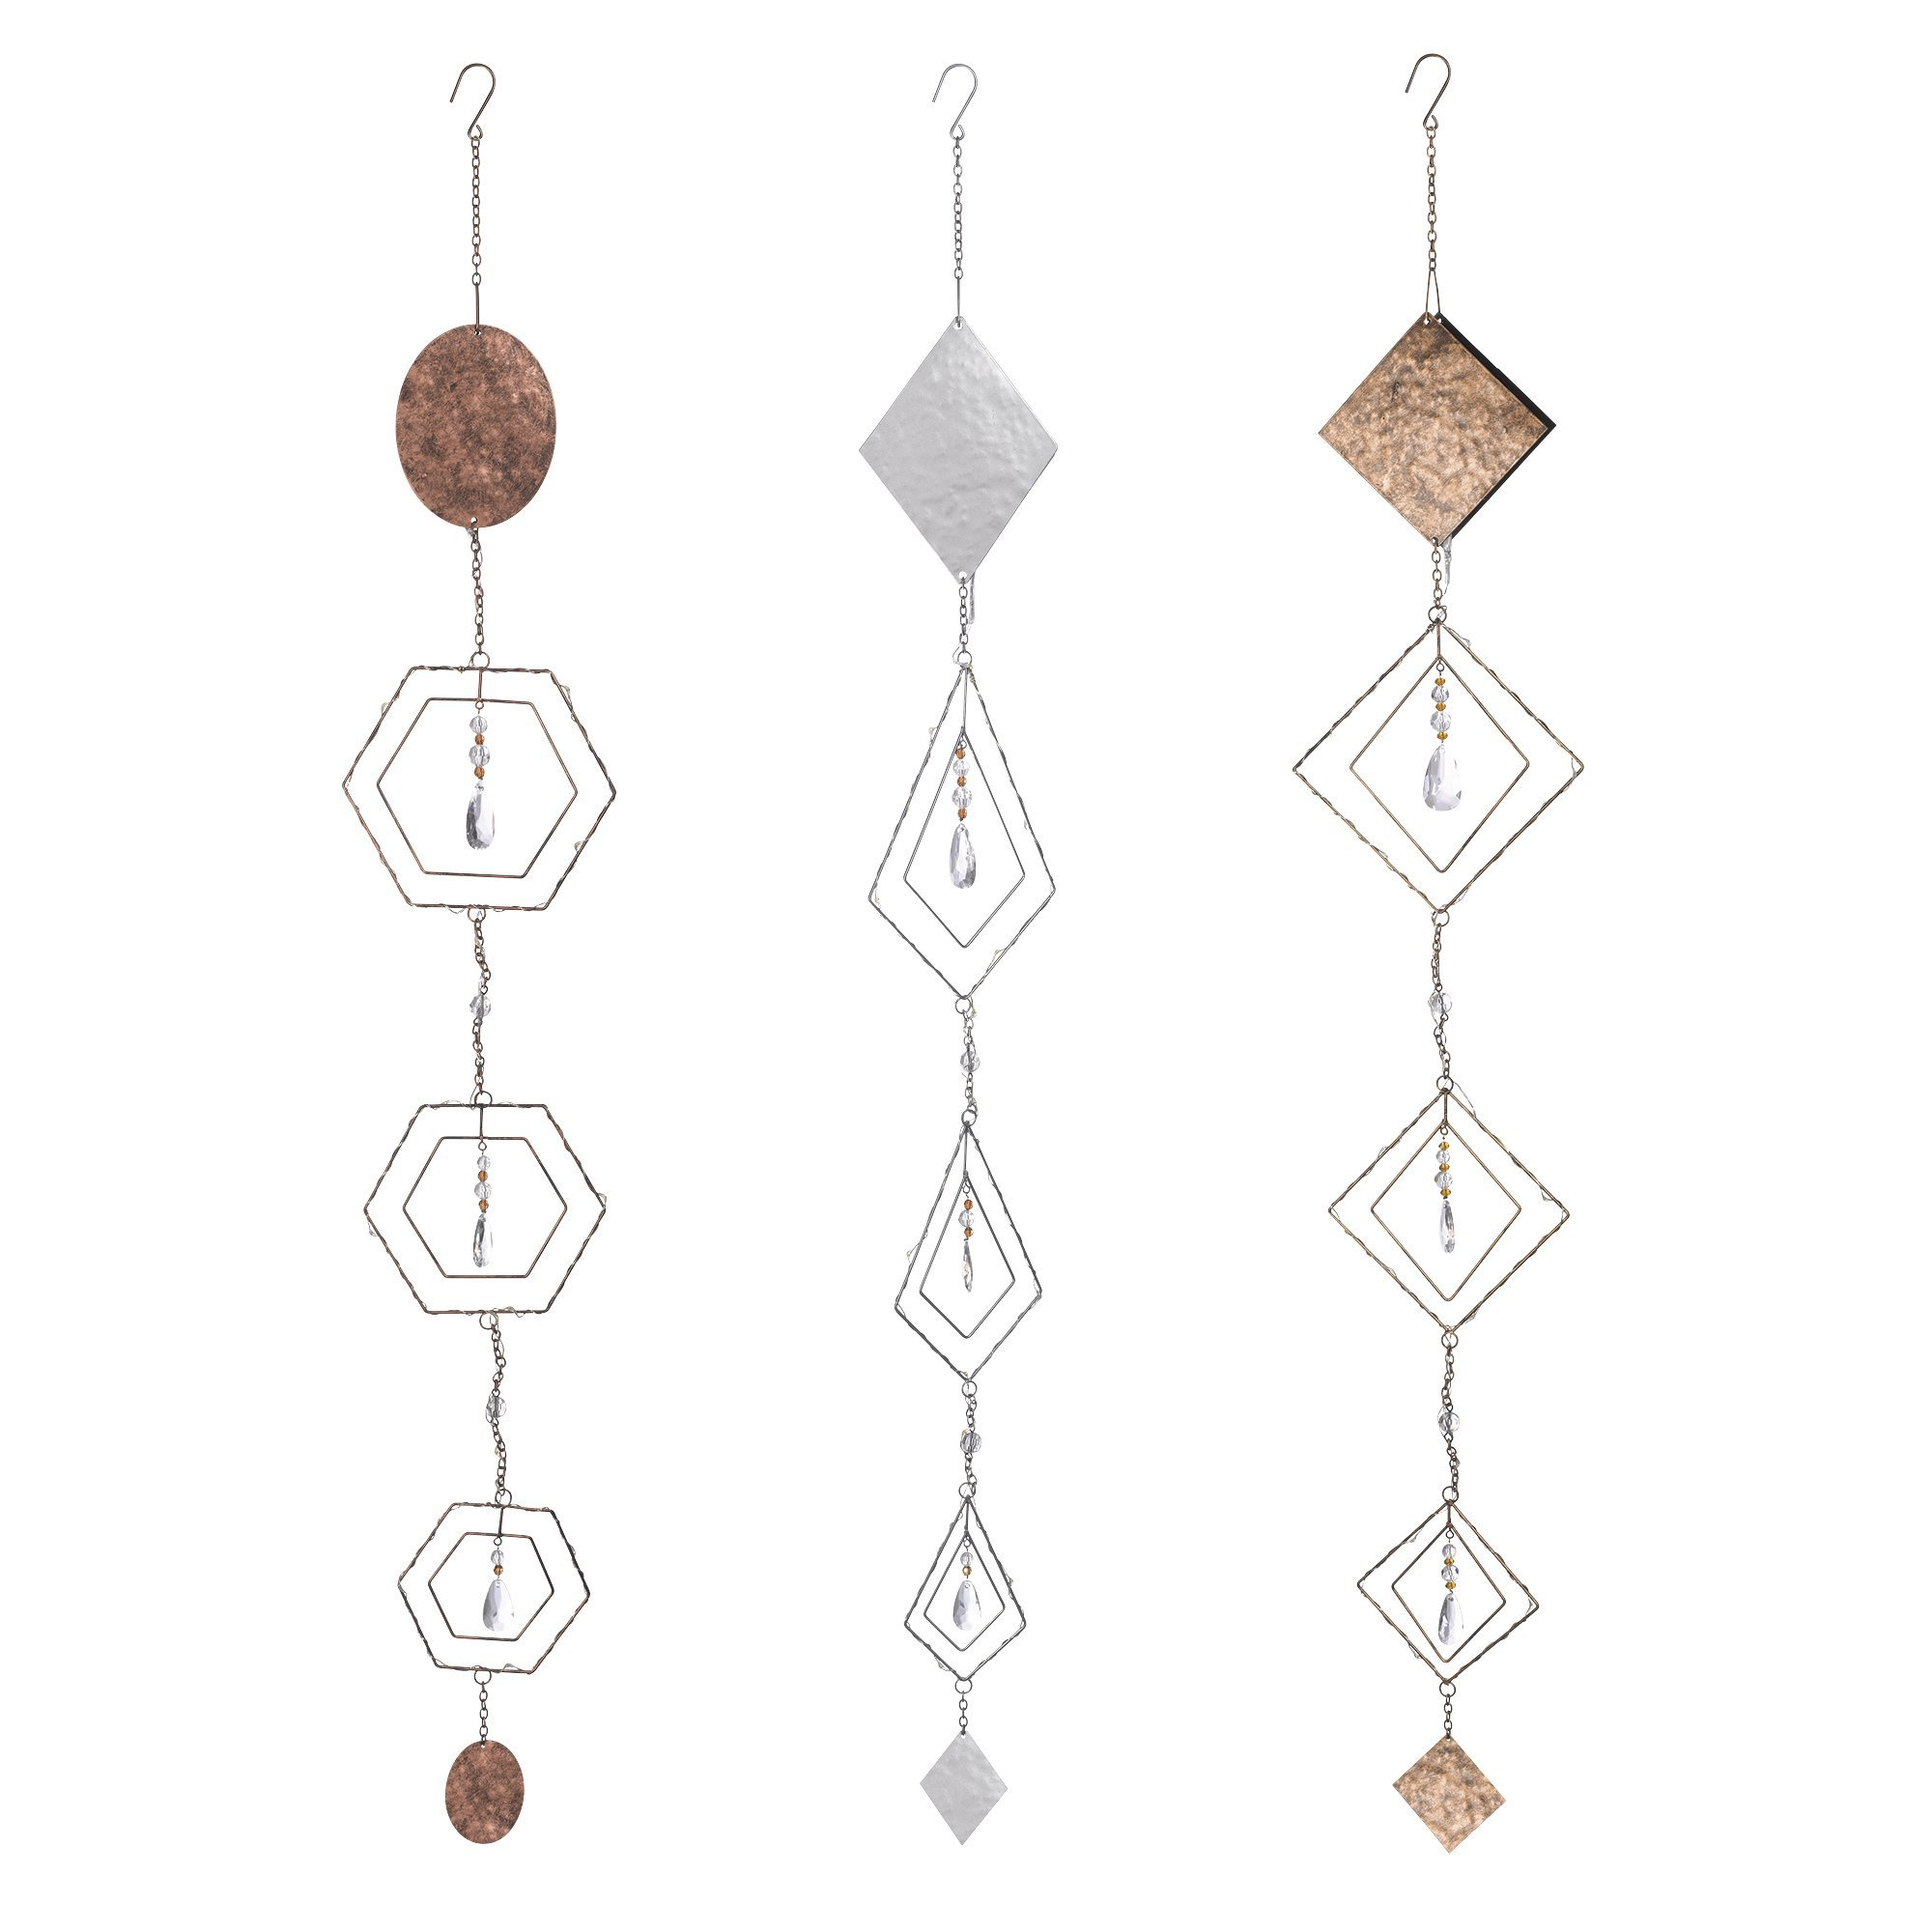 Grasslands Road Large Geometric Light-Up Hanging Decor (6 Pack), 35'', Bronze/Brown/Clear/Silver/Grey